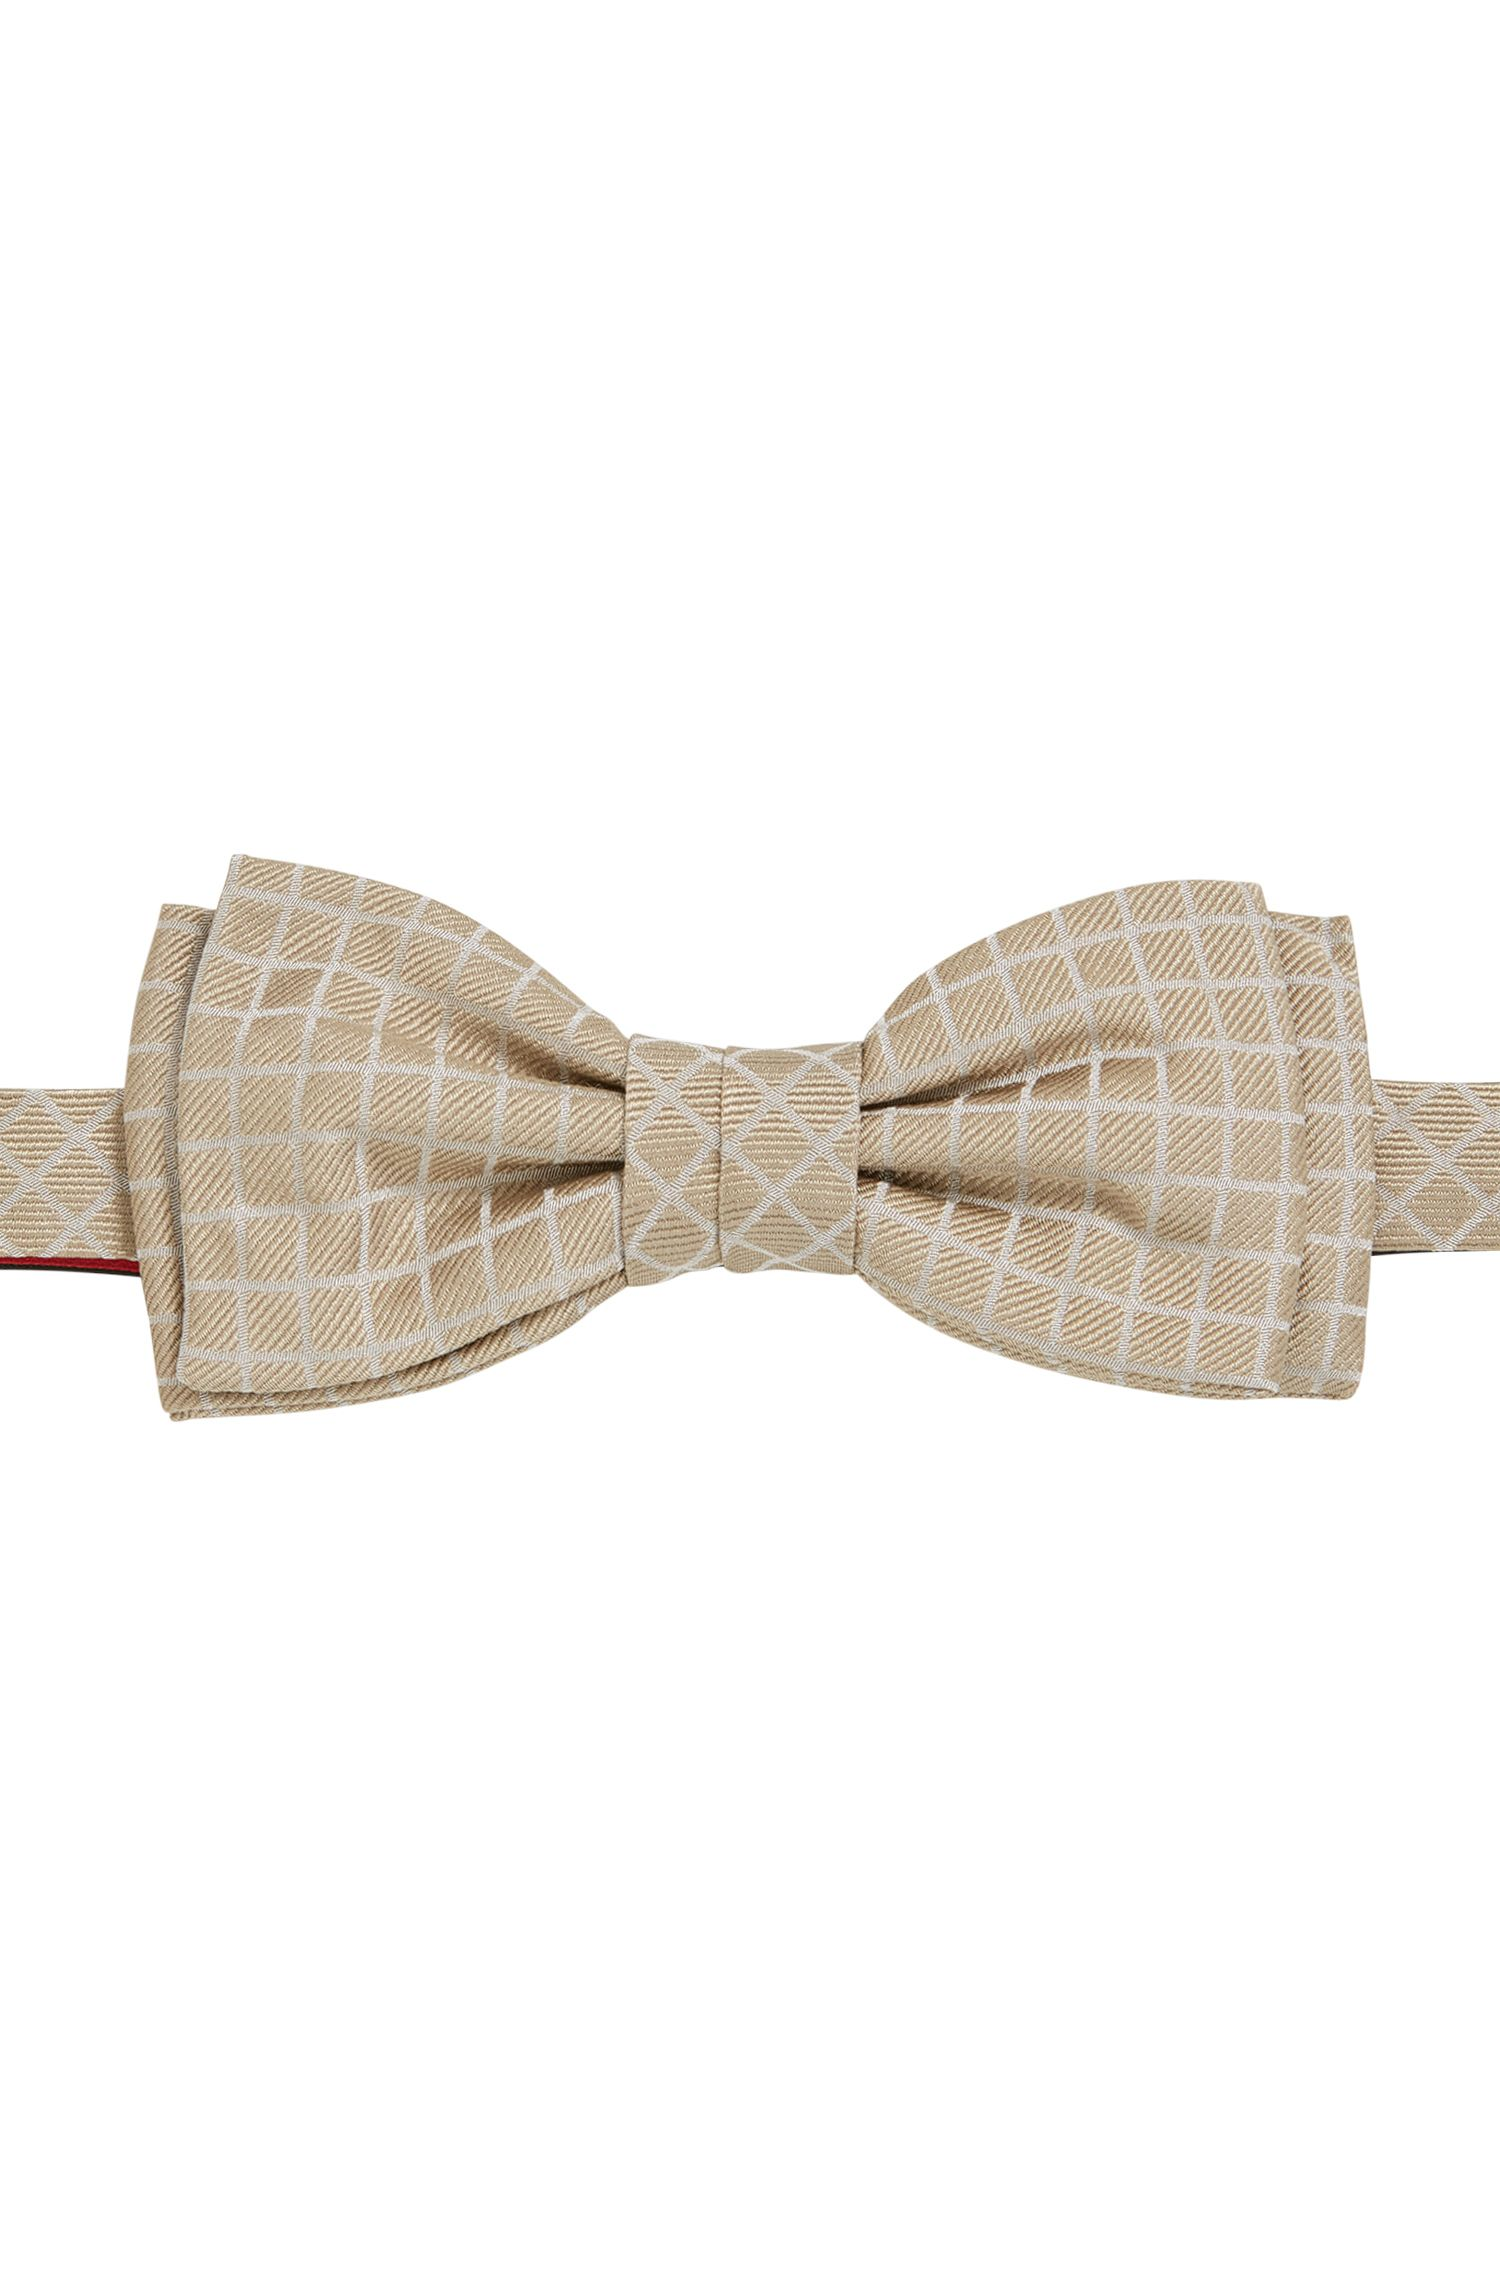 'Bow Tie' | Patterned Silk Bow Tie